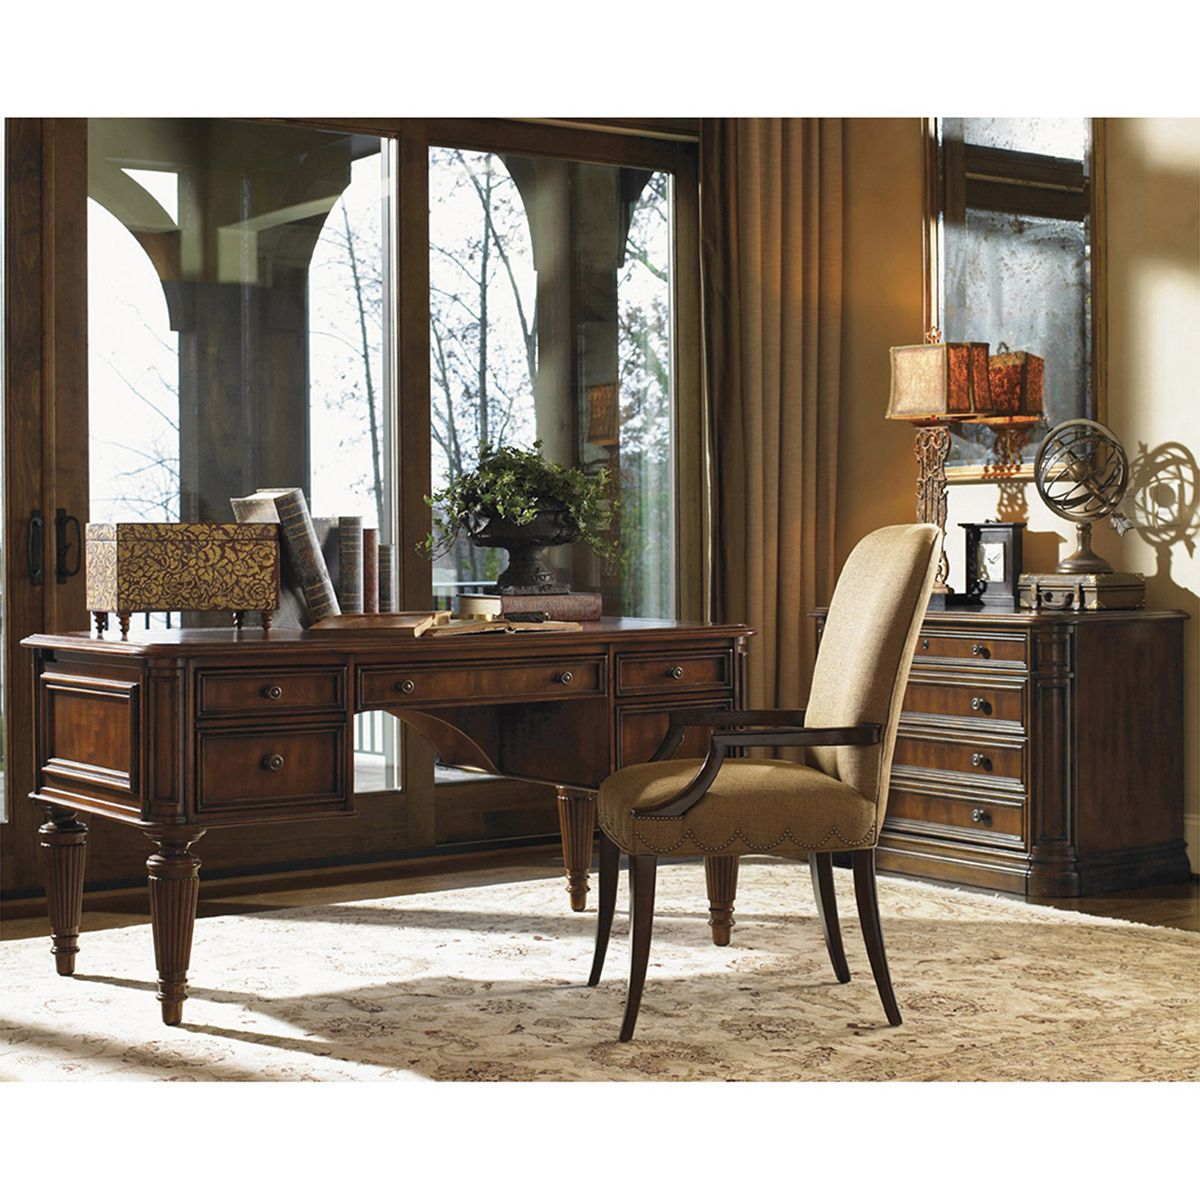 Colorado Style Home Furnishings Is A Furniture Store Located In South  Denver Colorado That Offers An Incredible Selection Of Fine Furniture And  Accessories, ...